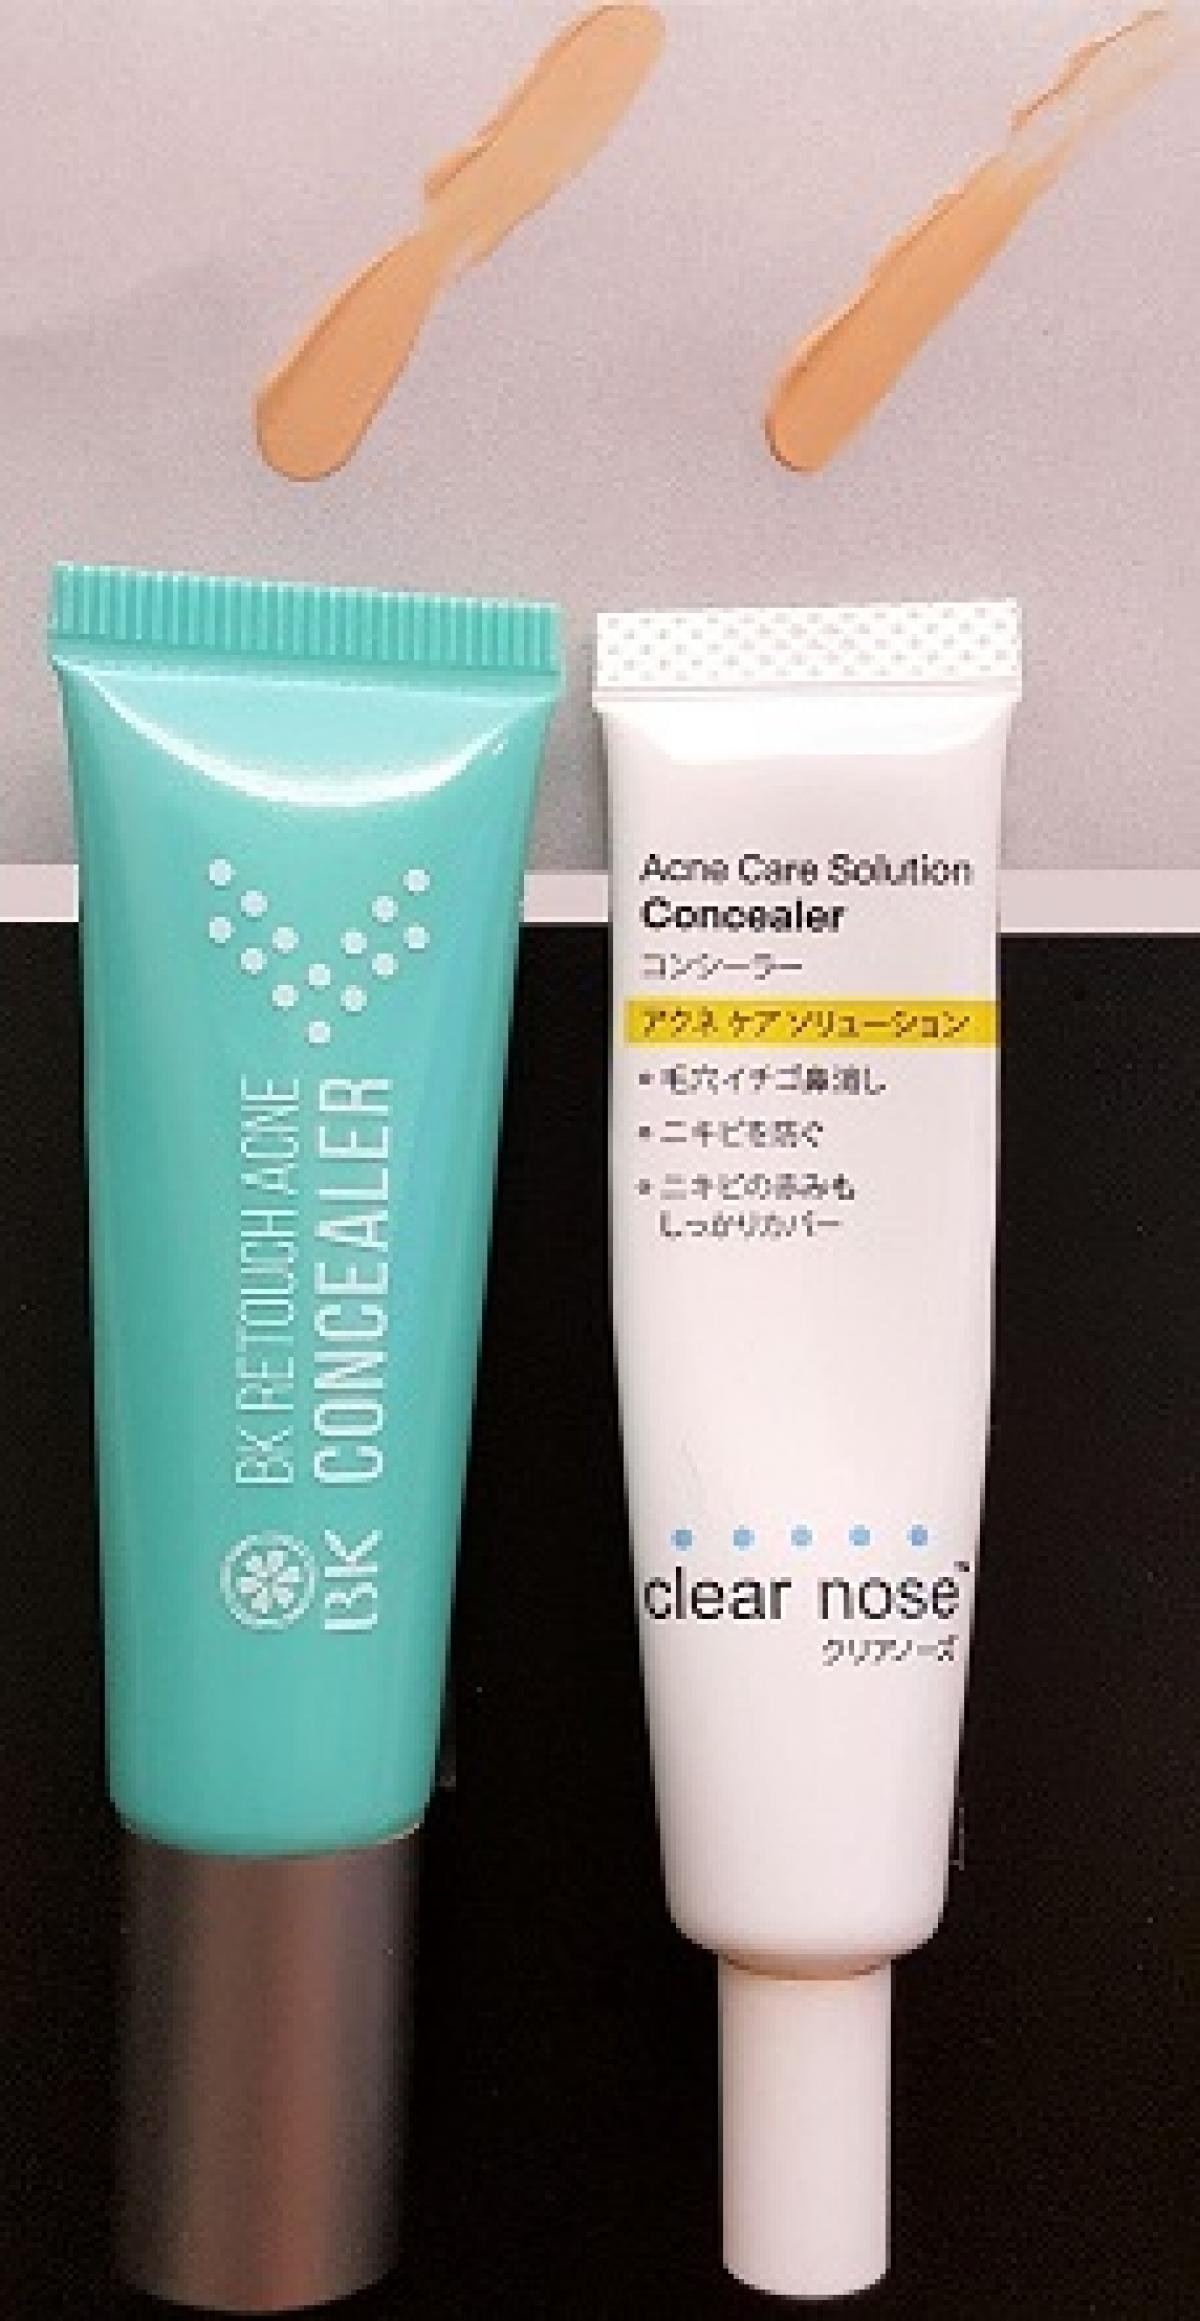 [Review] Concealer for Acne prone skin ถึงเป็นสิวก็แต่งหน้าได้